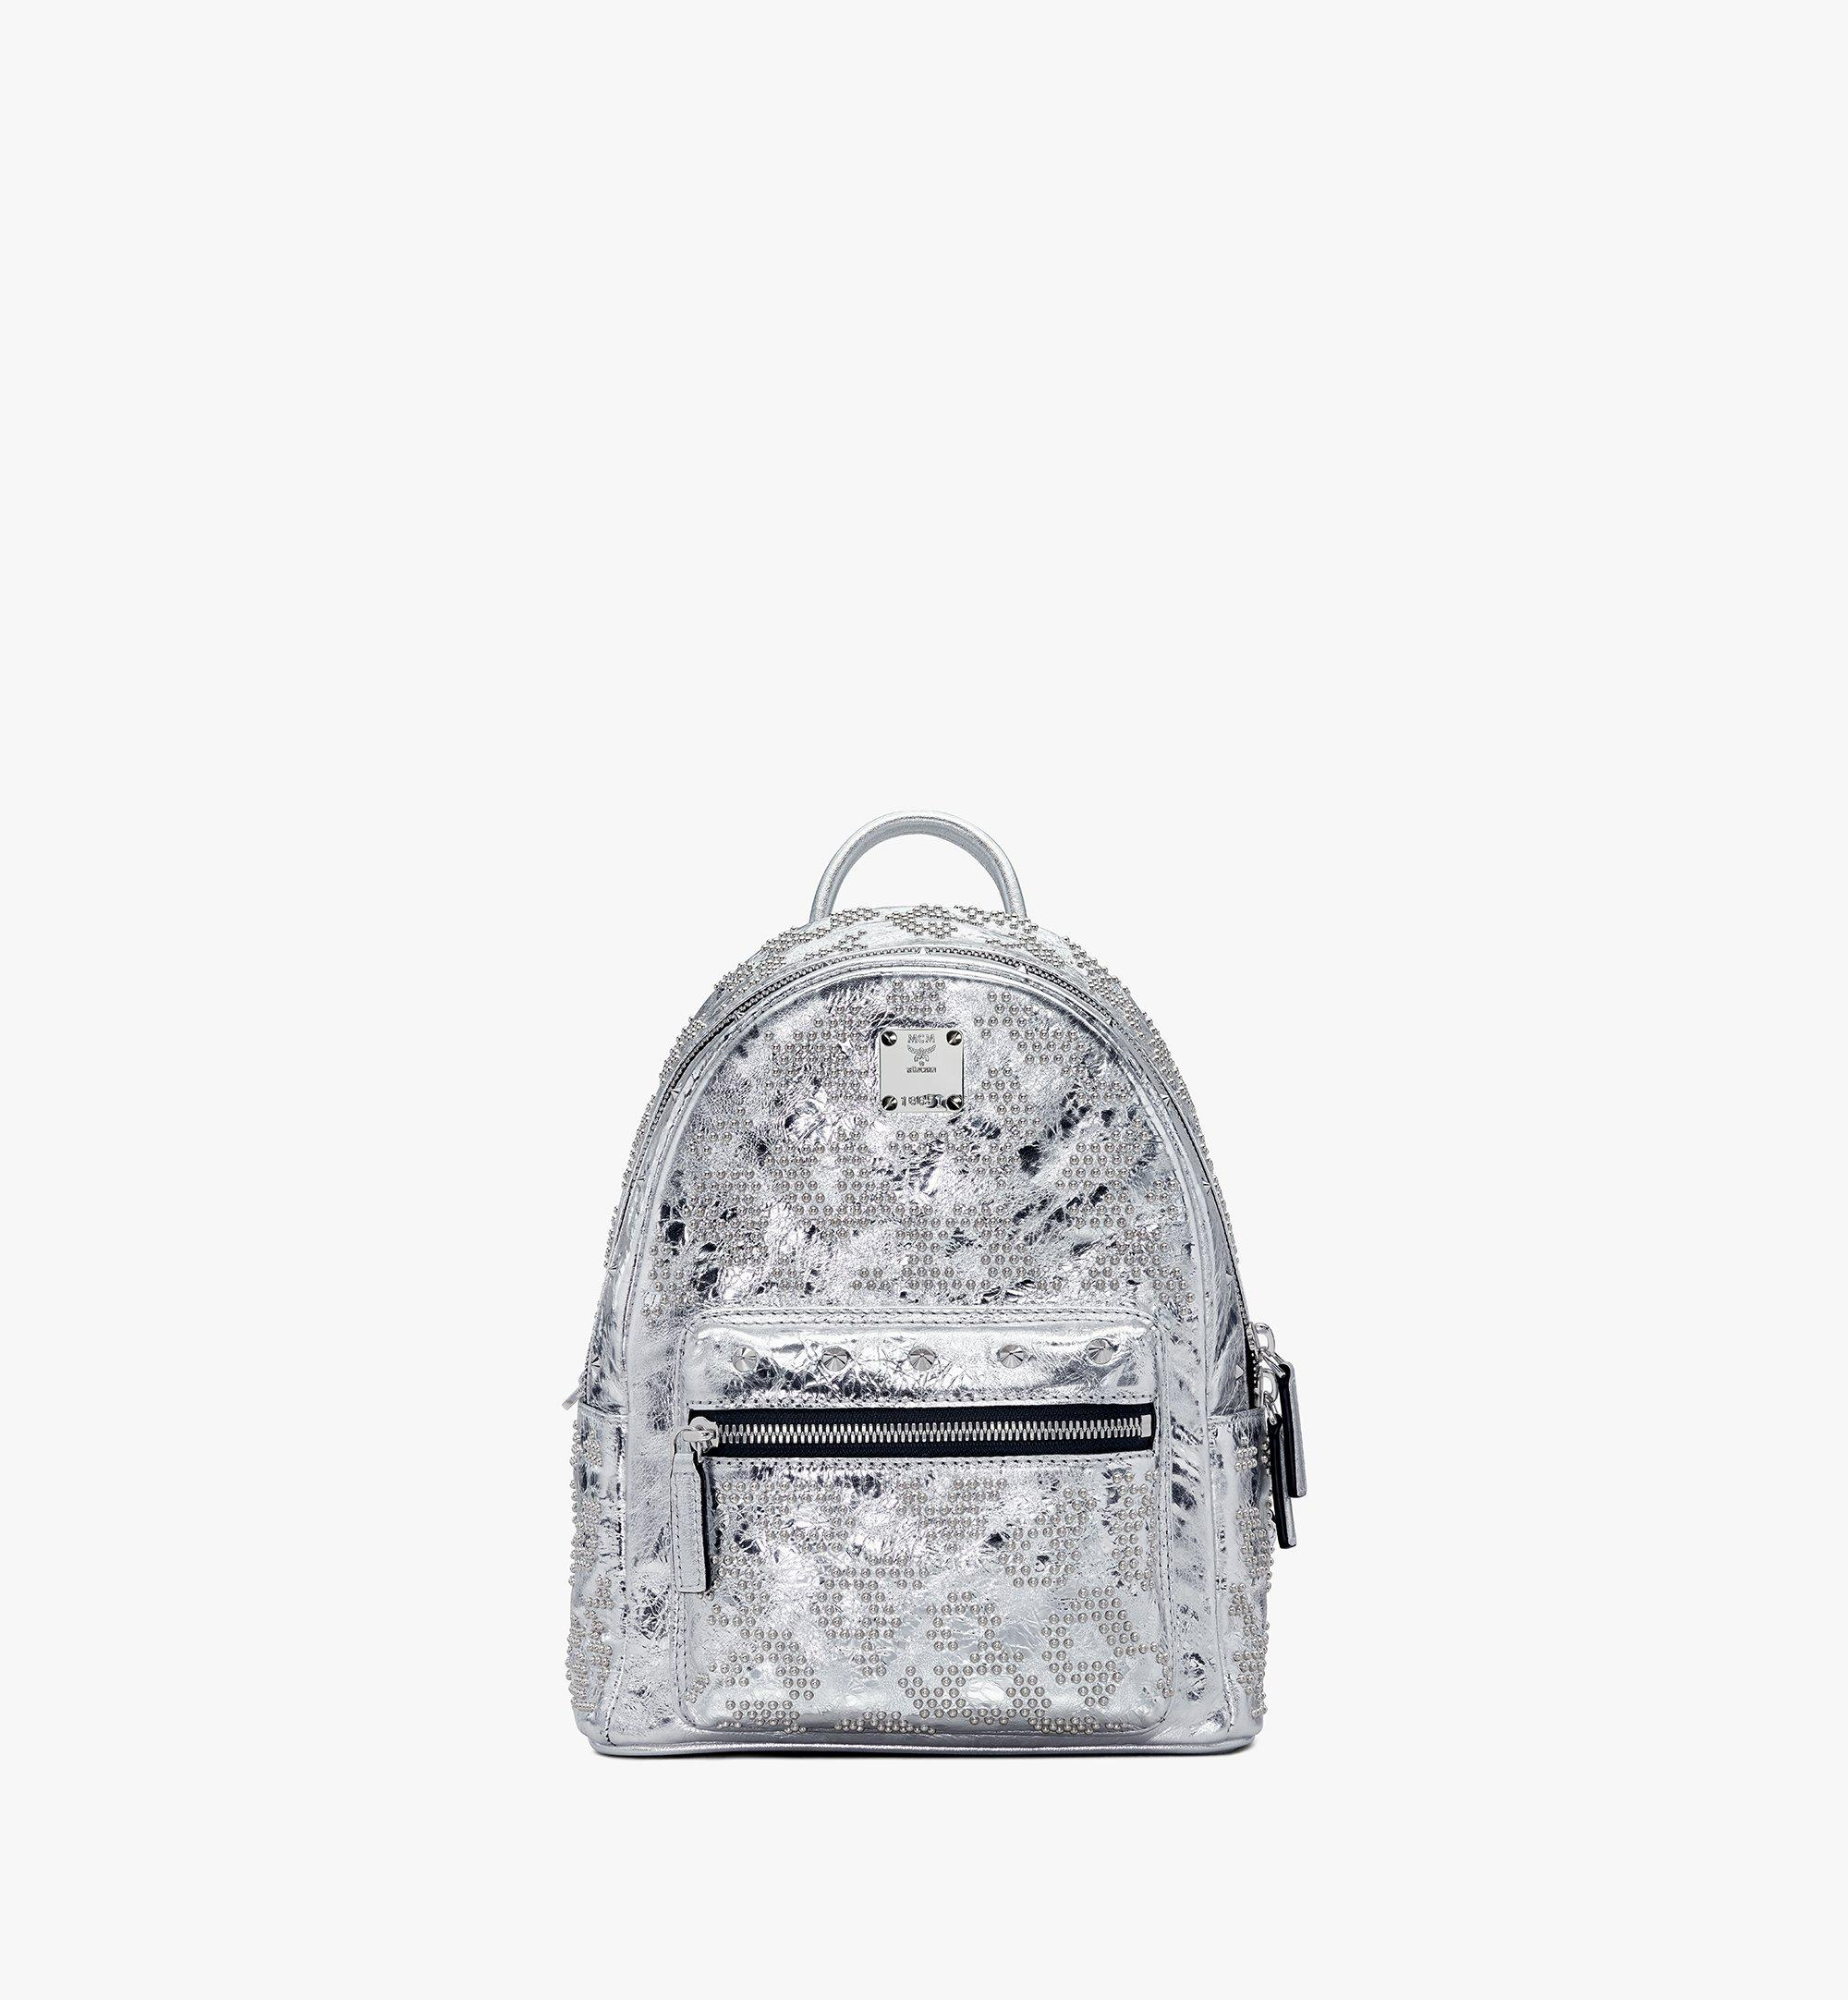 MCM Stark Backpack in Studded Leopard Leather Silver MWKASVE06SA001 Alternate View 1